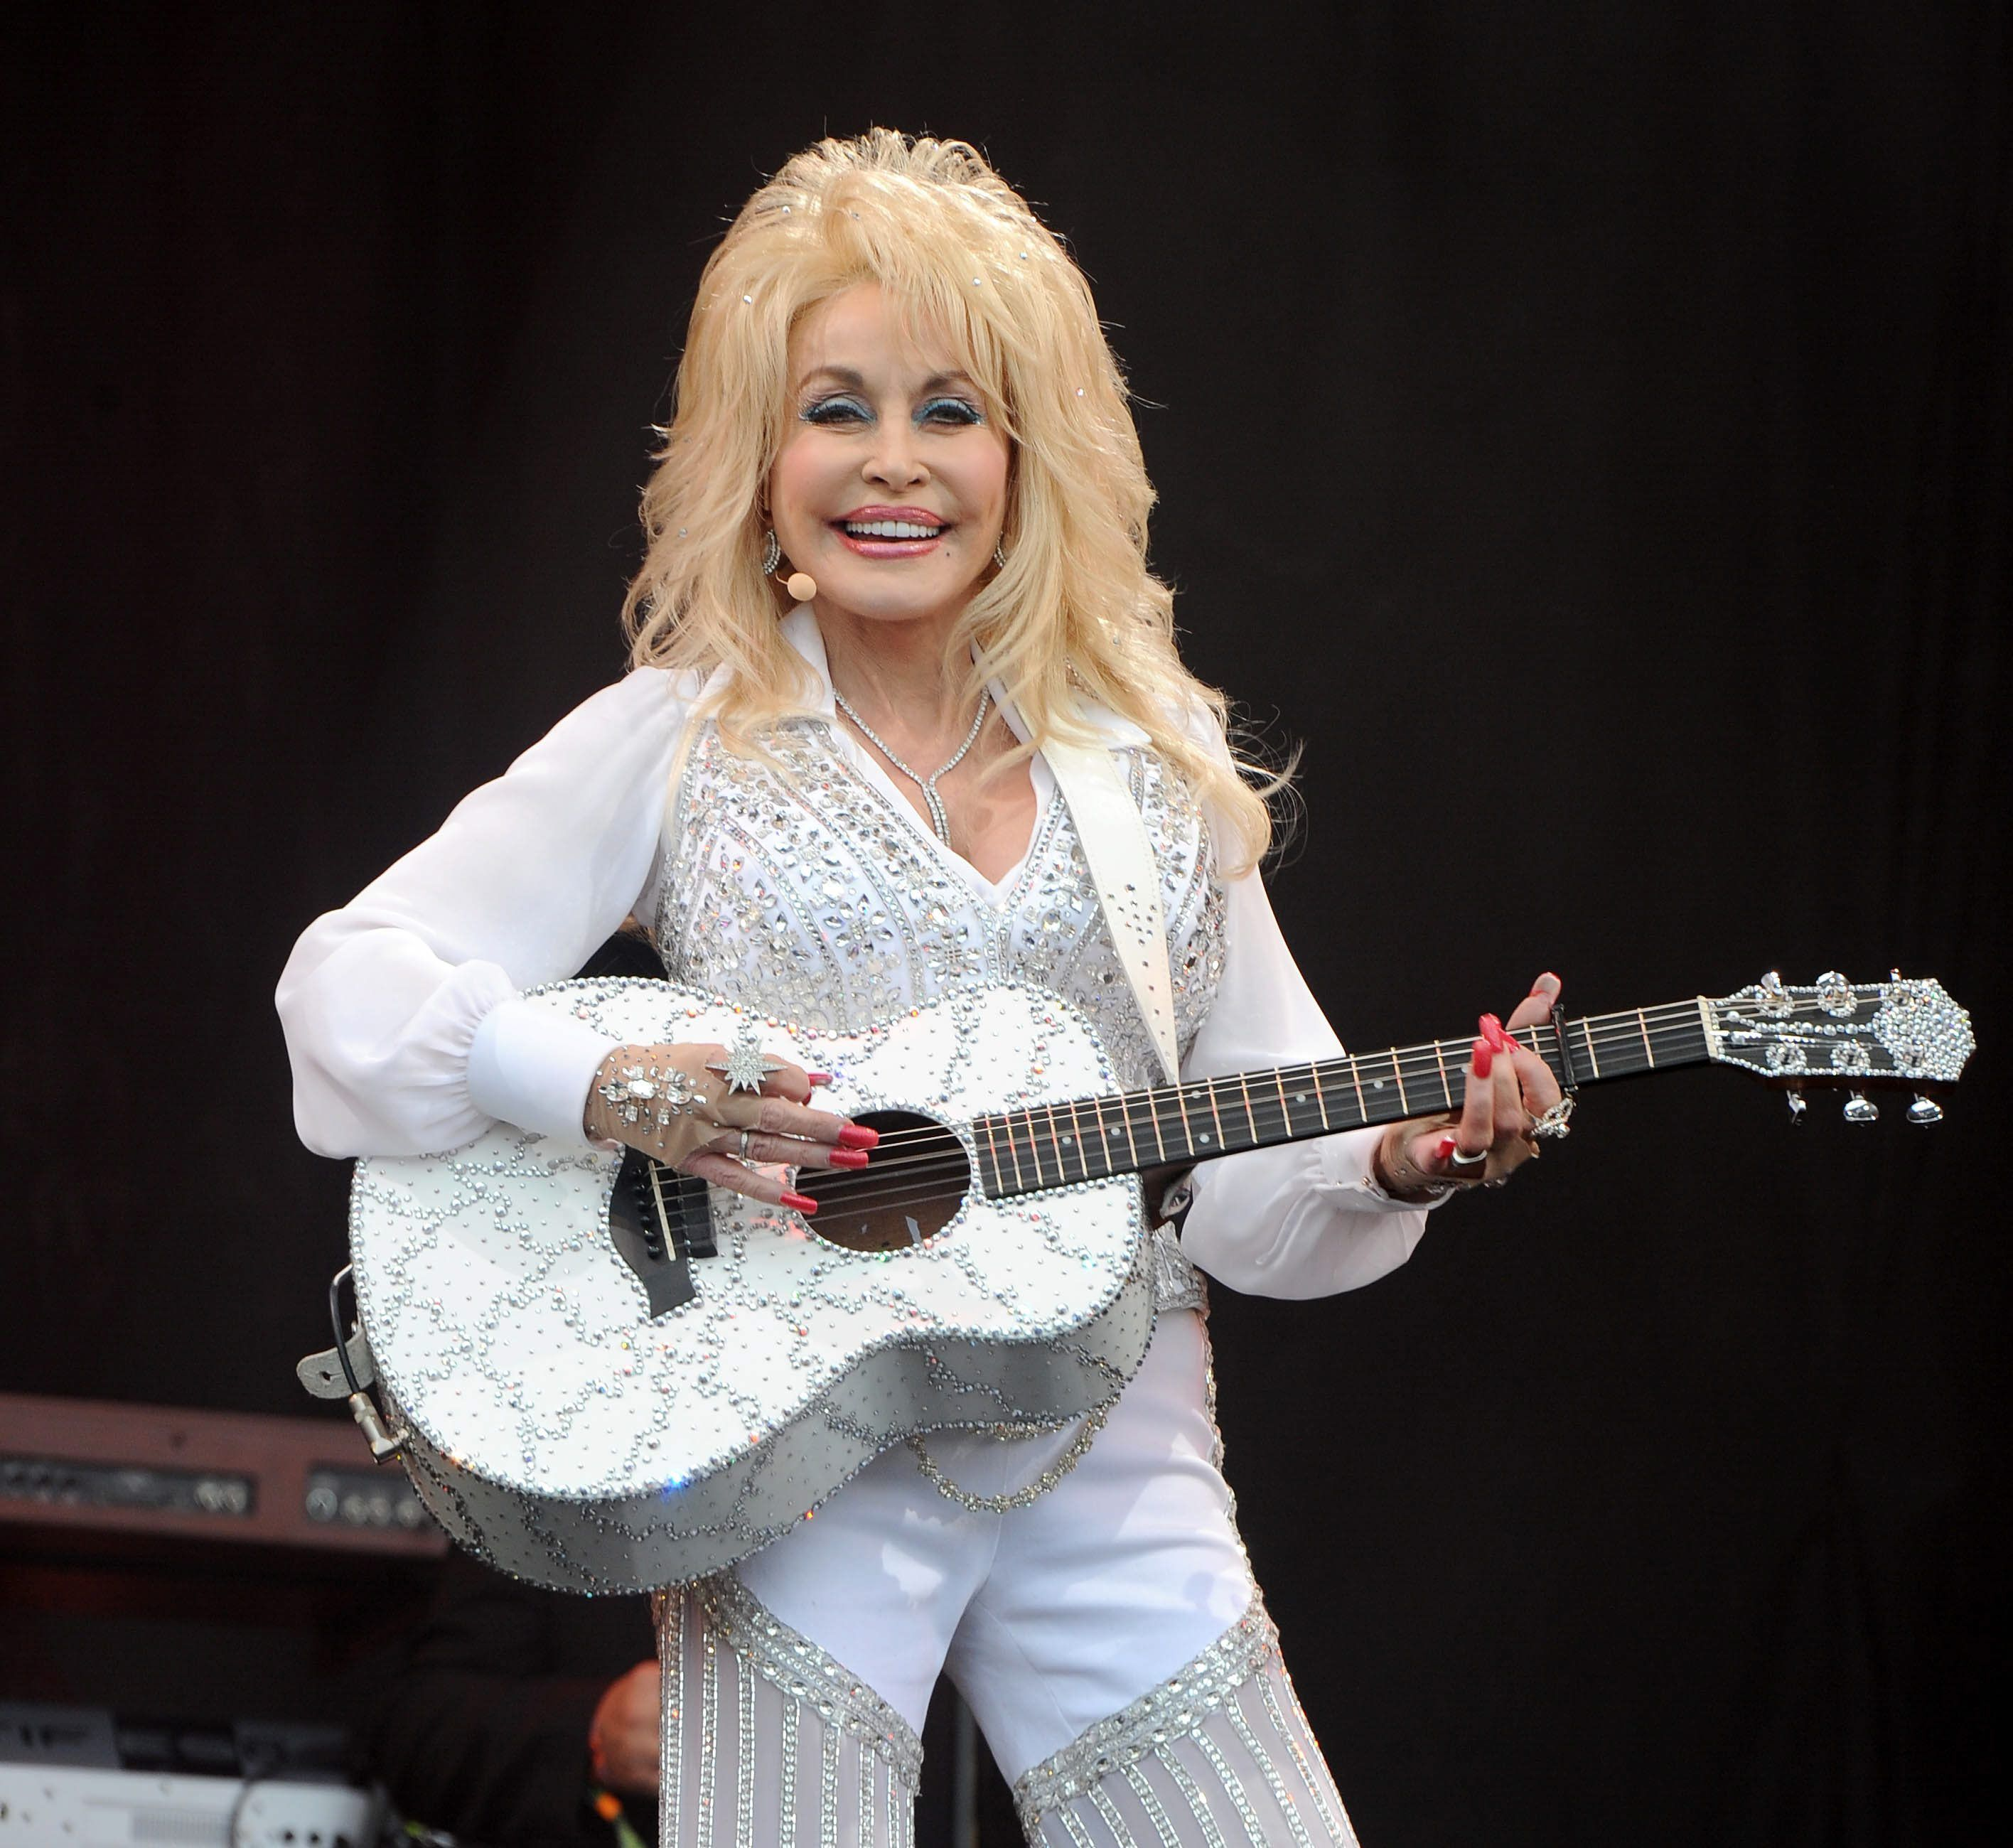 Things You Might Not Know About Dolly Parton - Fame10